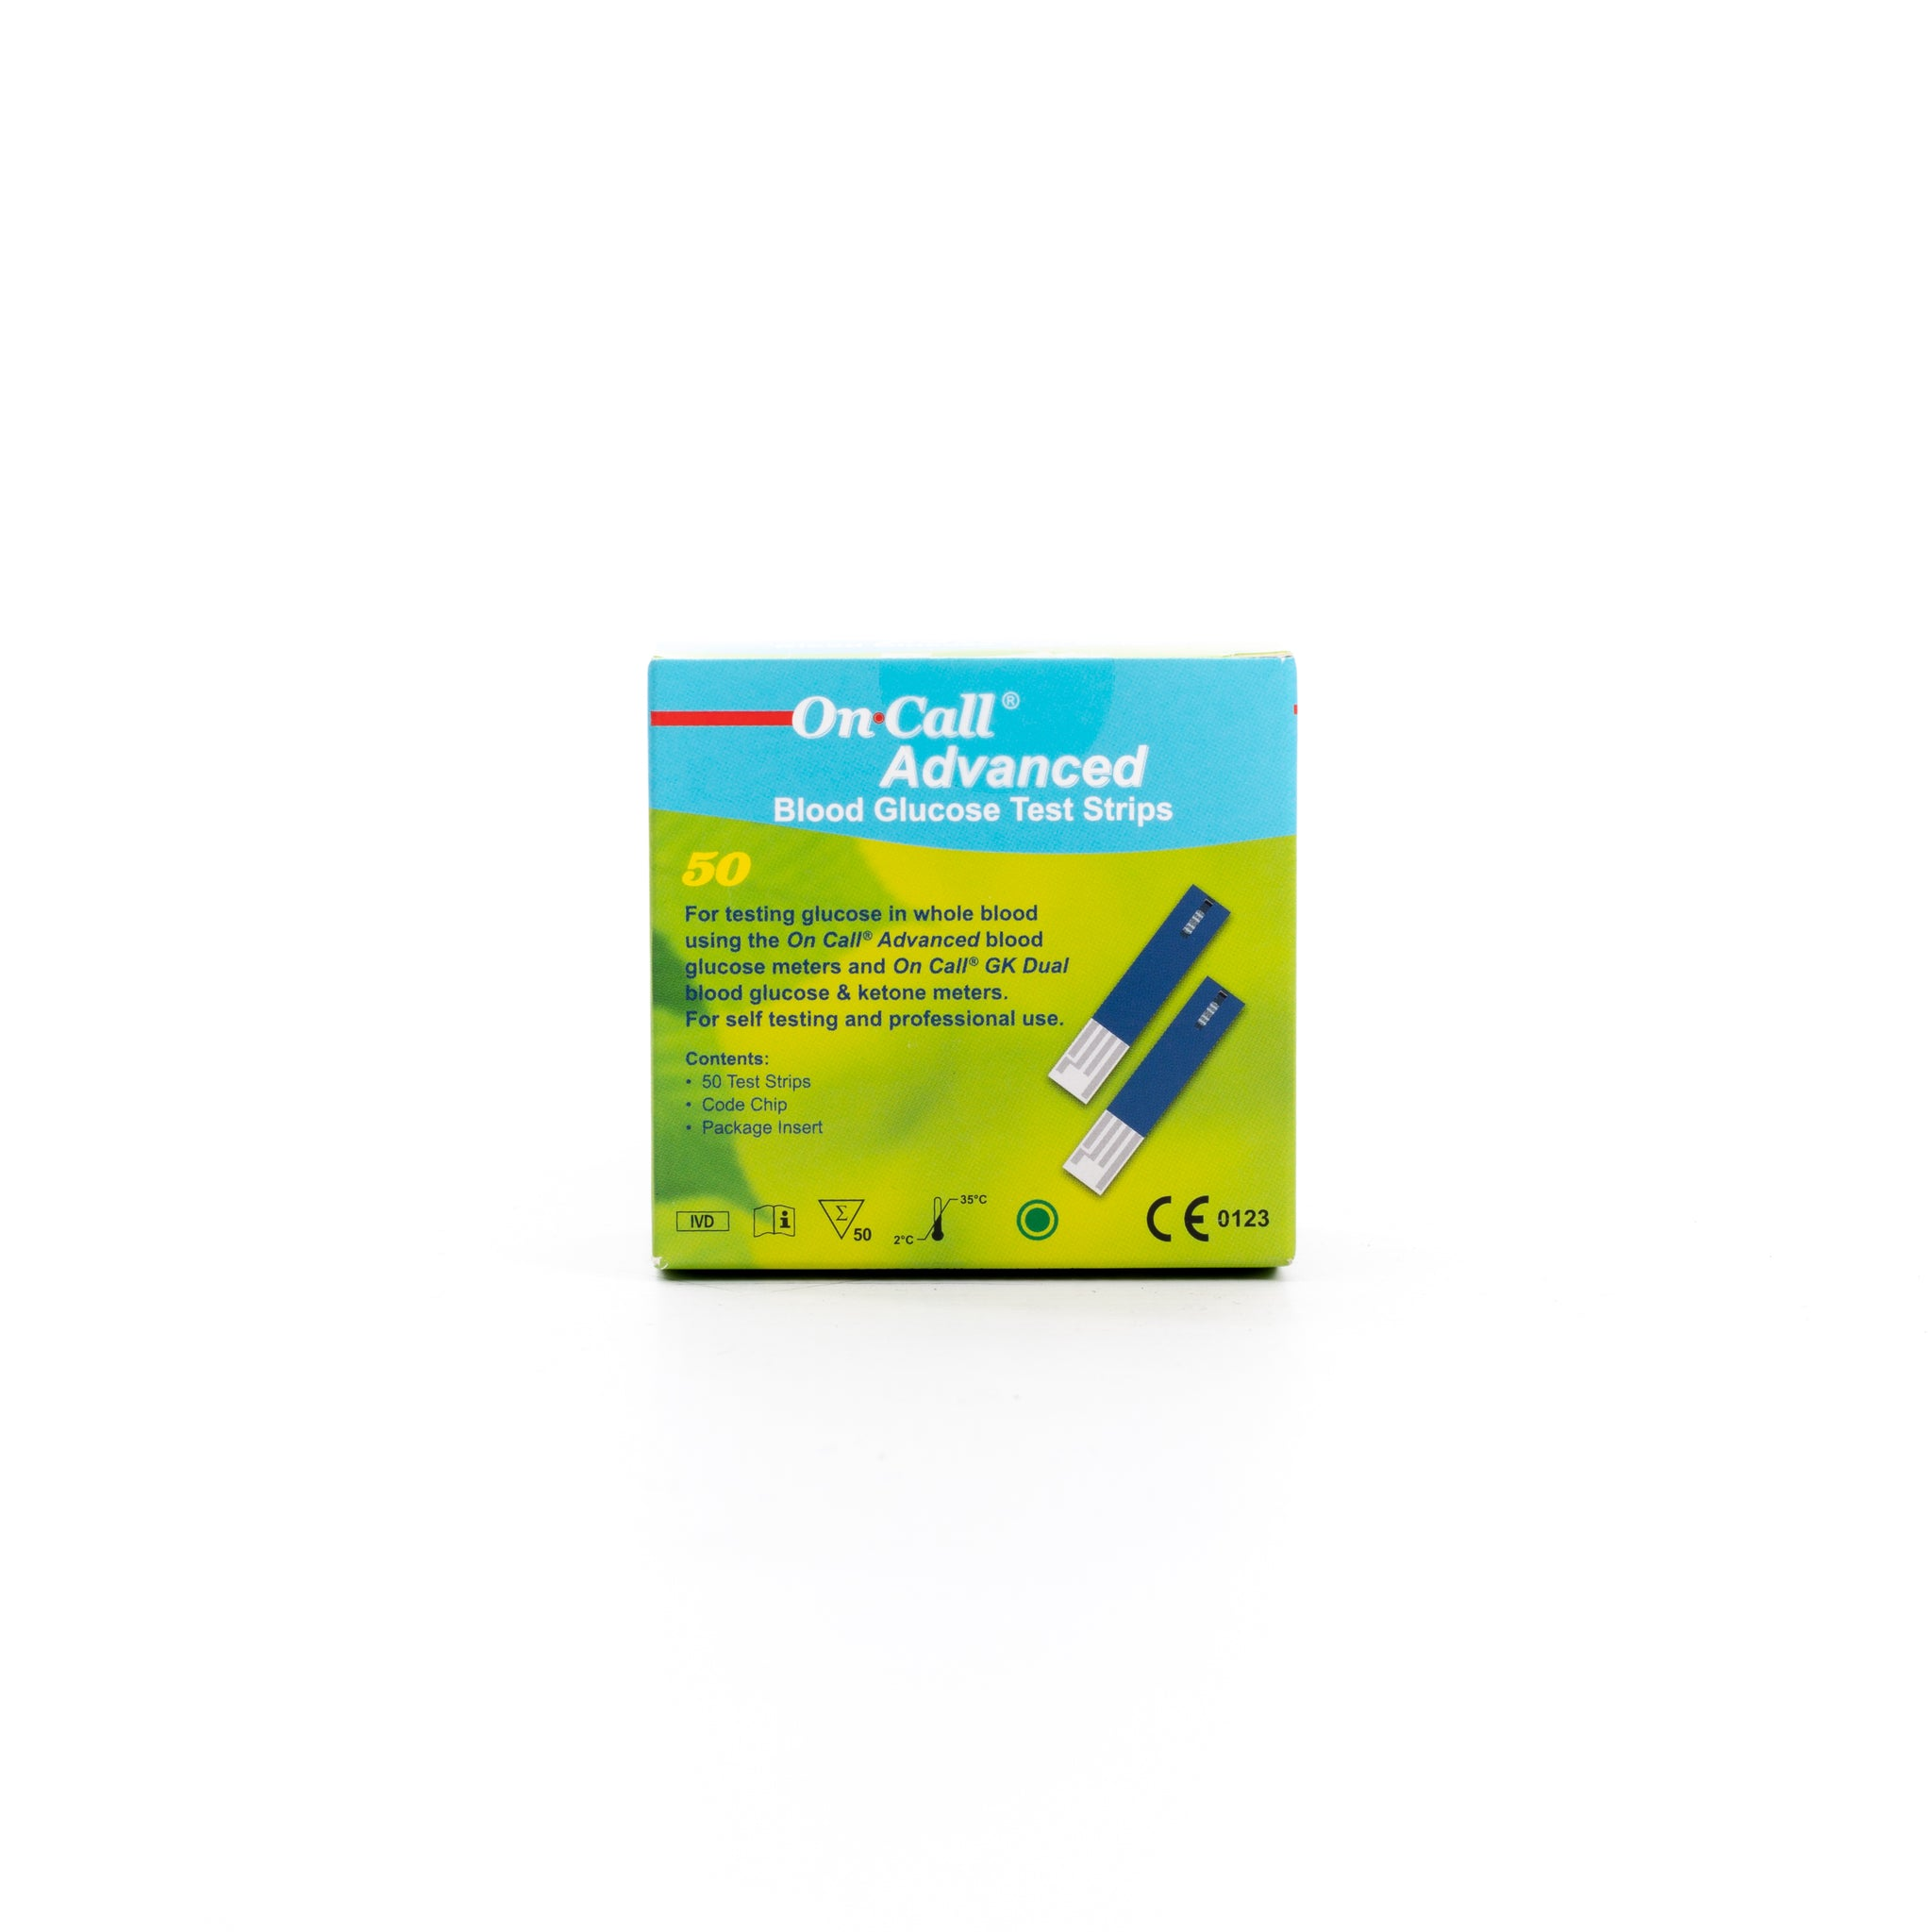 ON CALL® ADVANCED BLOOD GLUCOSE TEST STRIPS (50)